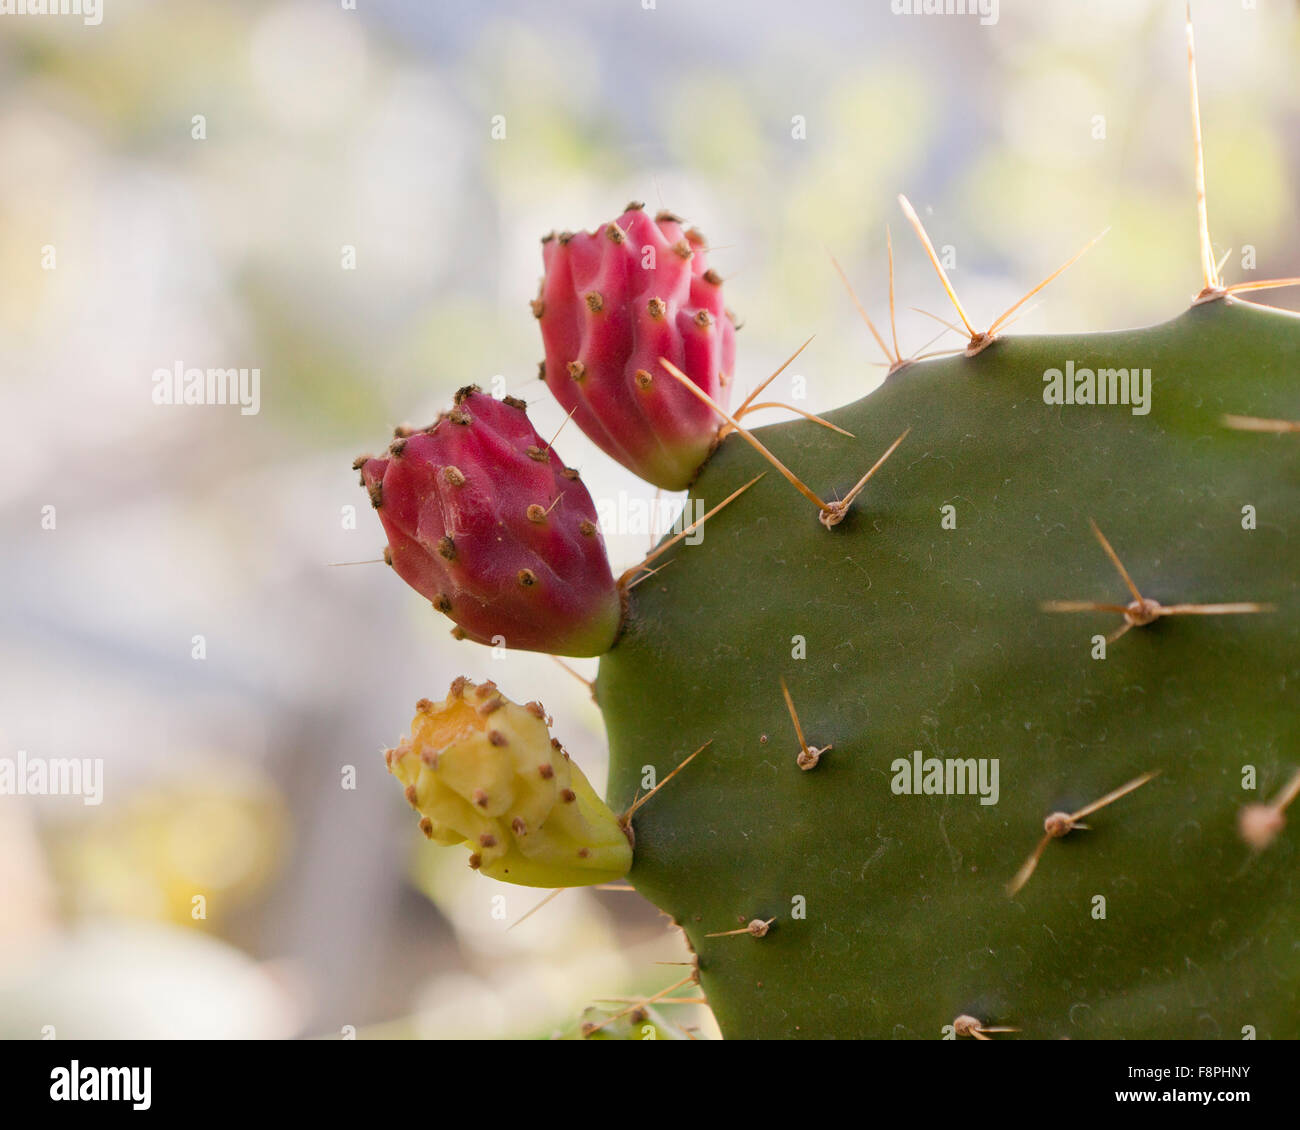 Texas Prickly Pear Cactus Opuntia Engelmannii Fruits Native To